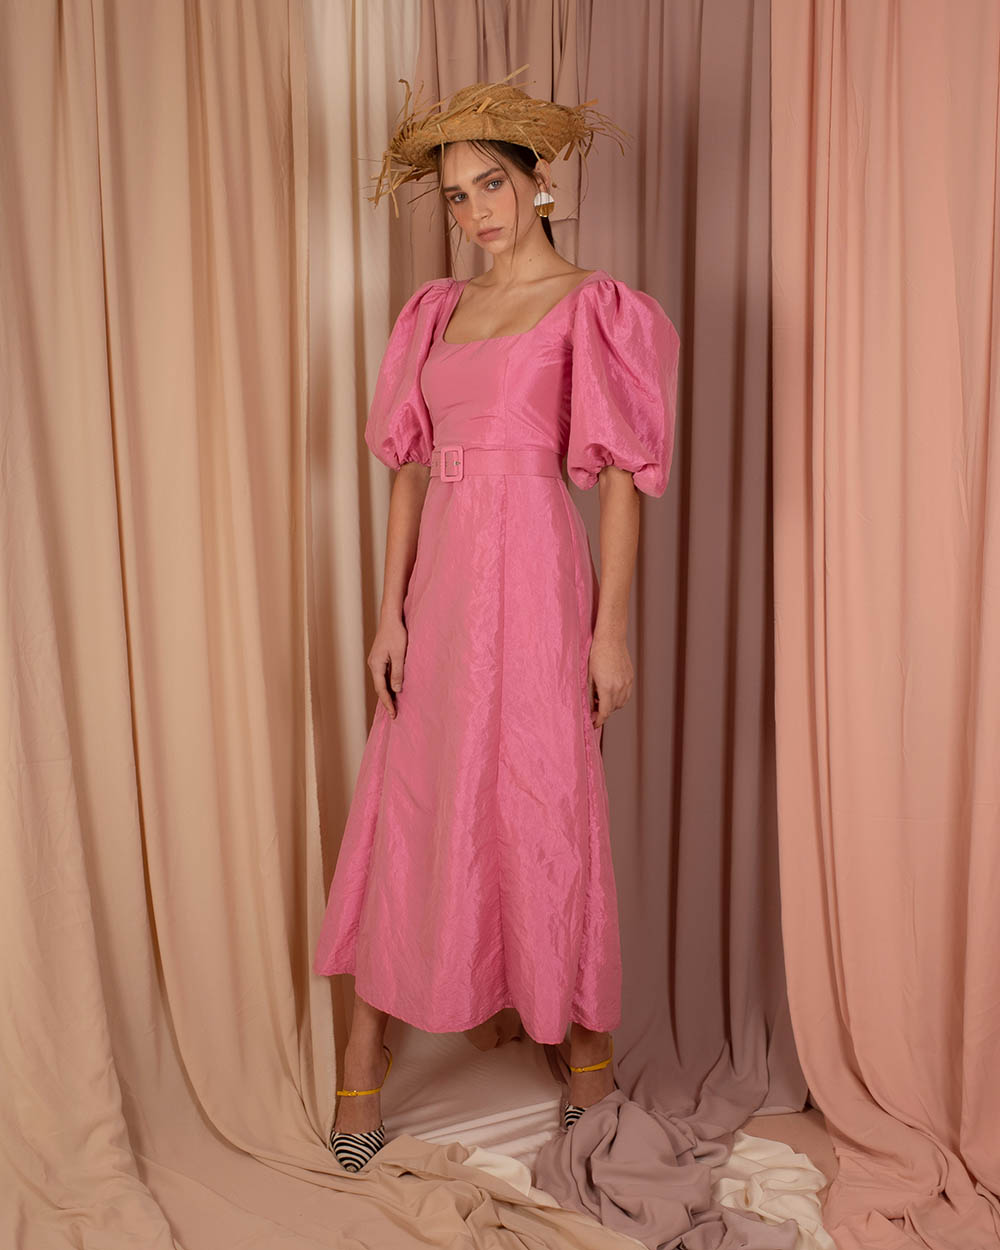 River Dress - Pink by Jessica K on curated-crowd.com